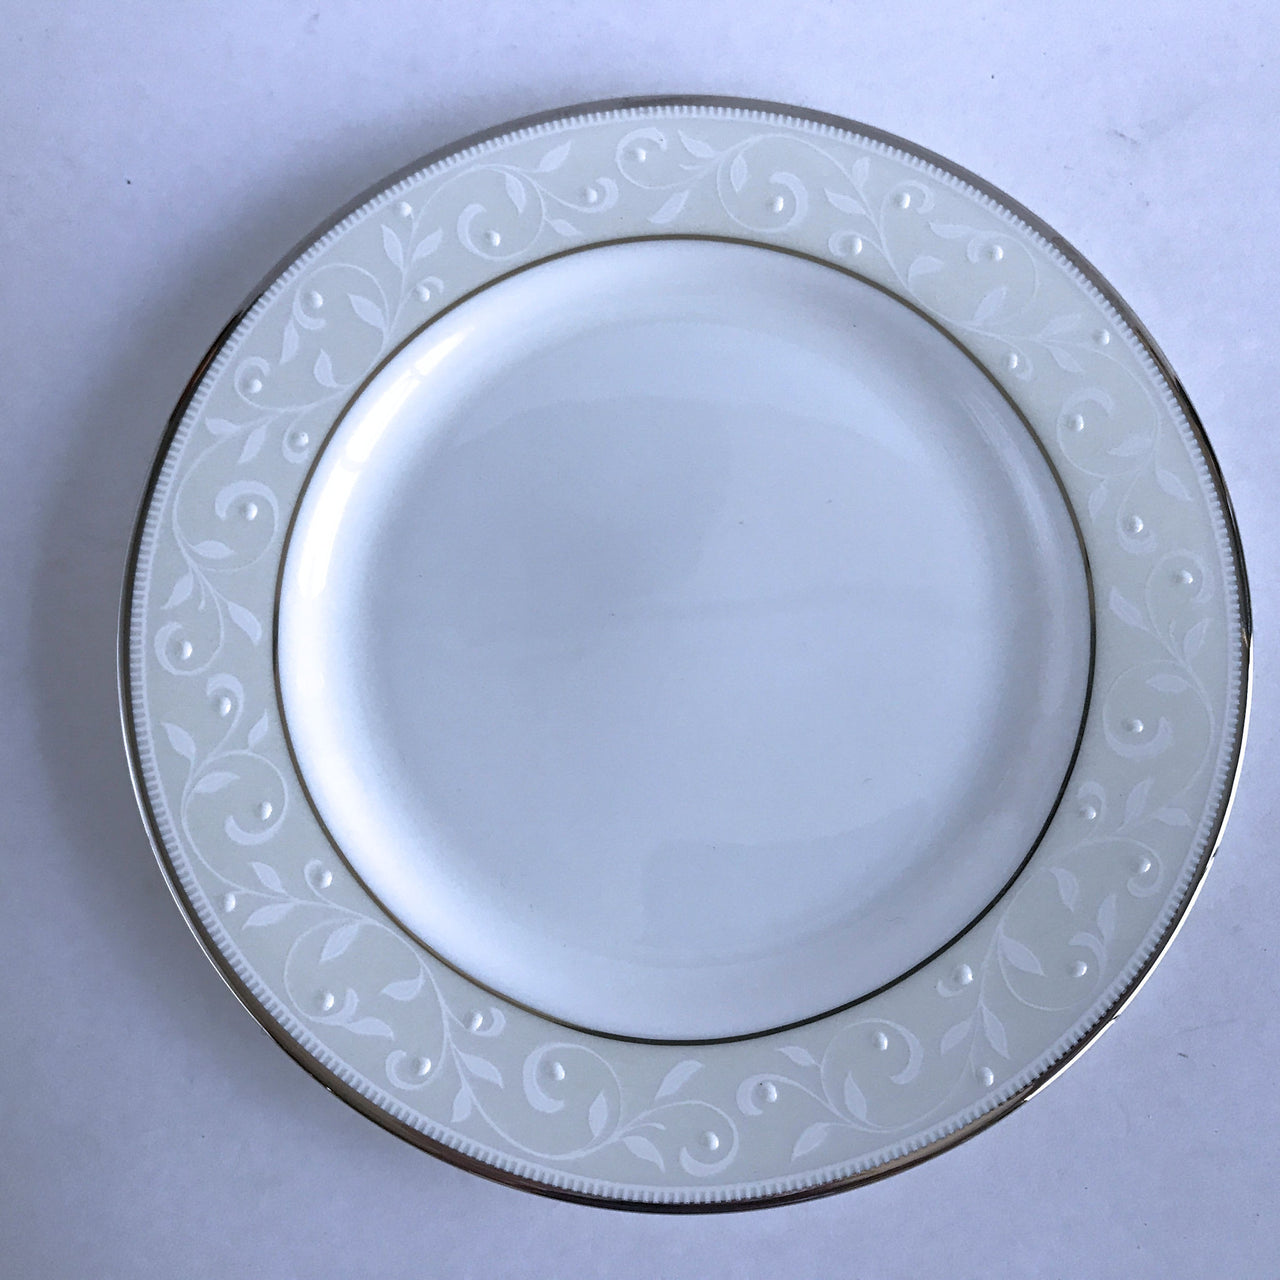 Lenox China Opal Innocence Bread Plate White Dots Leaves Platinum Trim